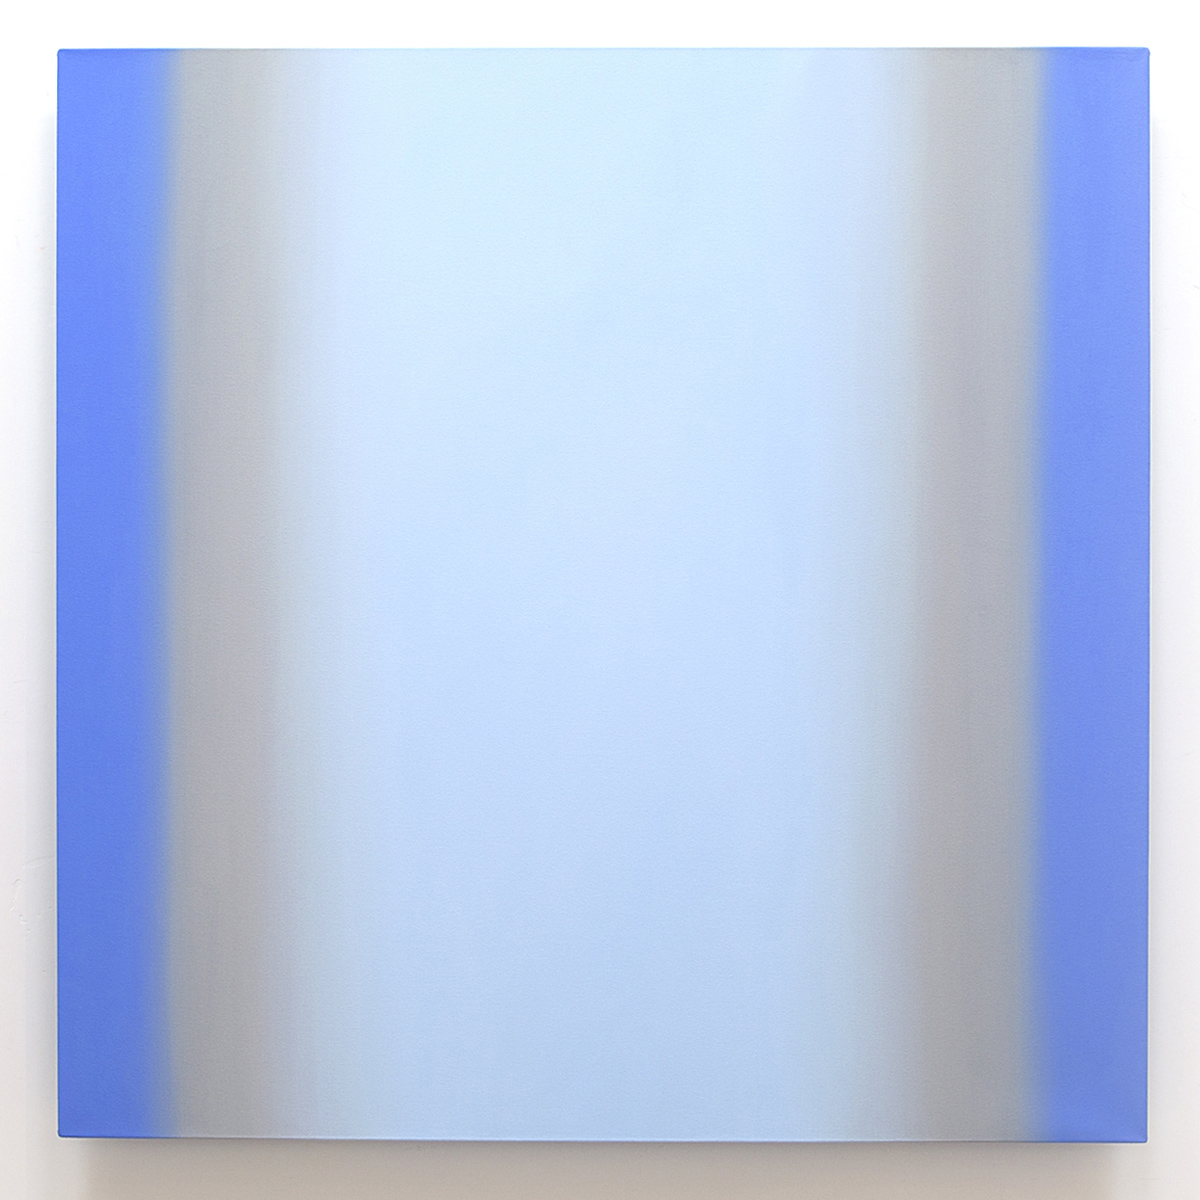 Blue Orange 3-S6060 (Blue Light), Interplay Series, 2013, oil on canvas on custom beveled stretcher, 60 x 60 in. (153 x 153 cm.)